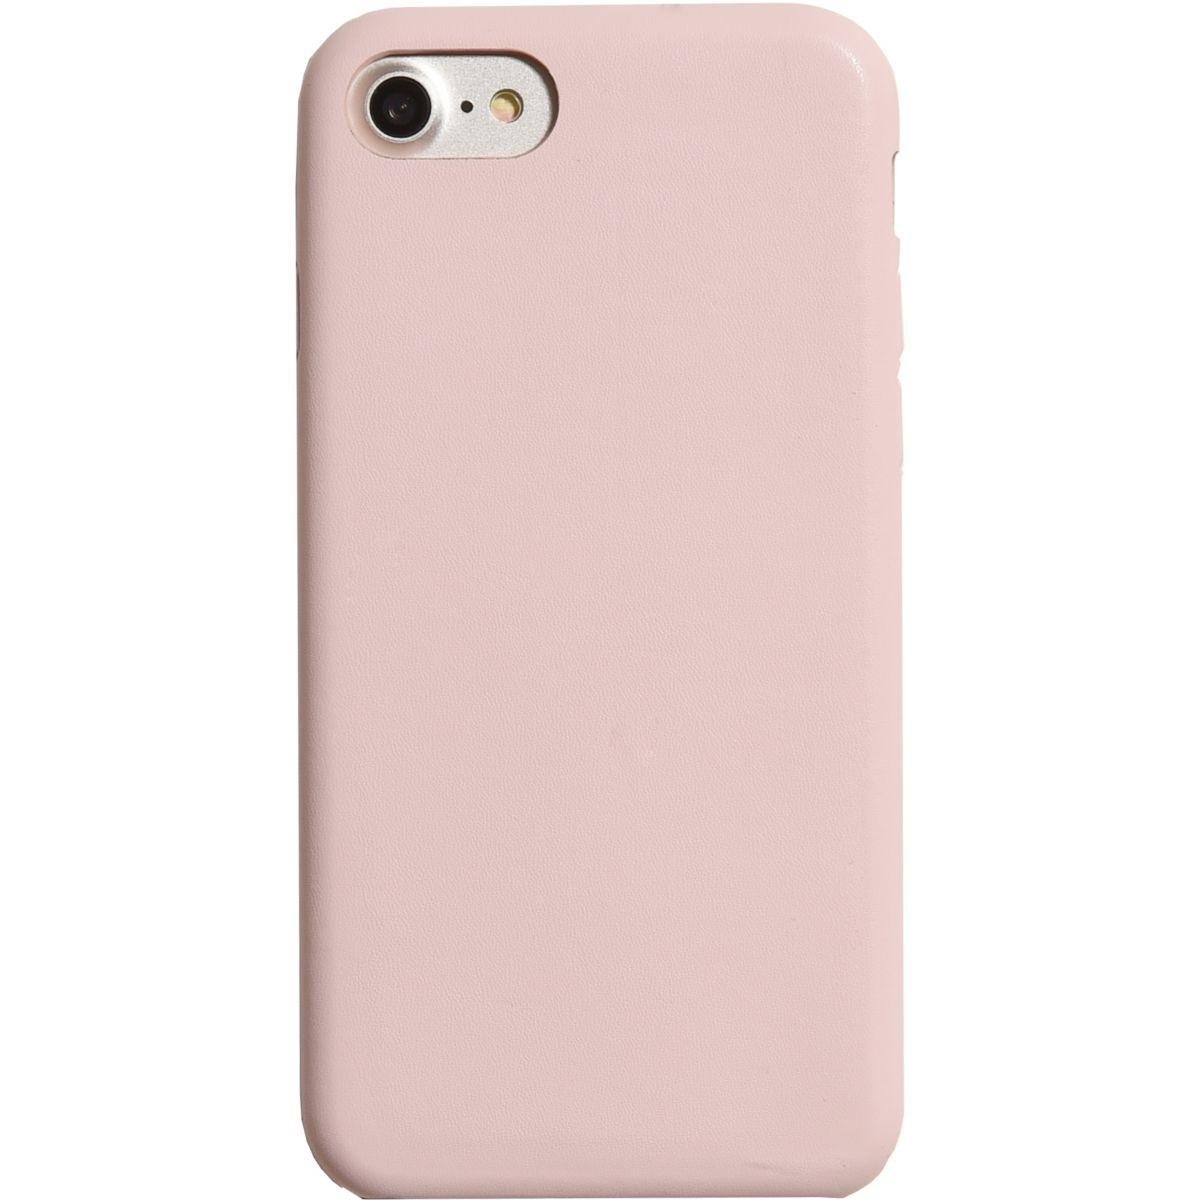 Coque adeqwat iphone 7 nude (photo)